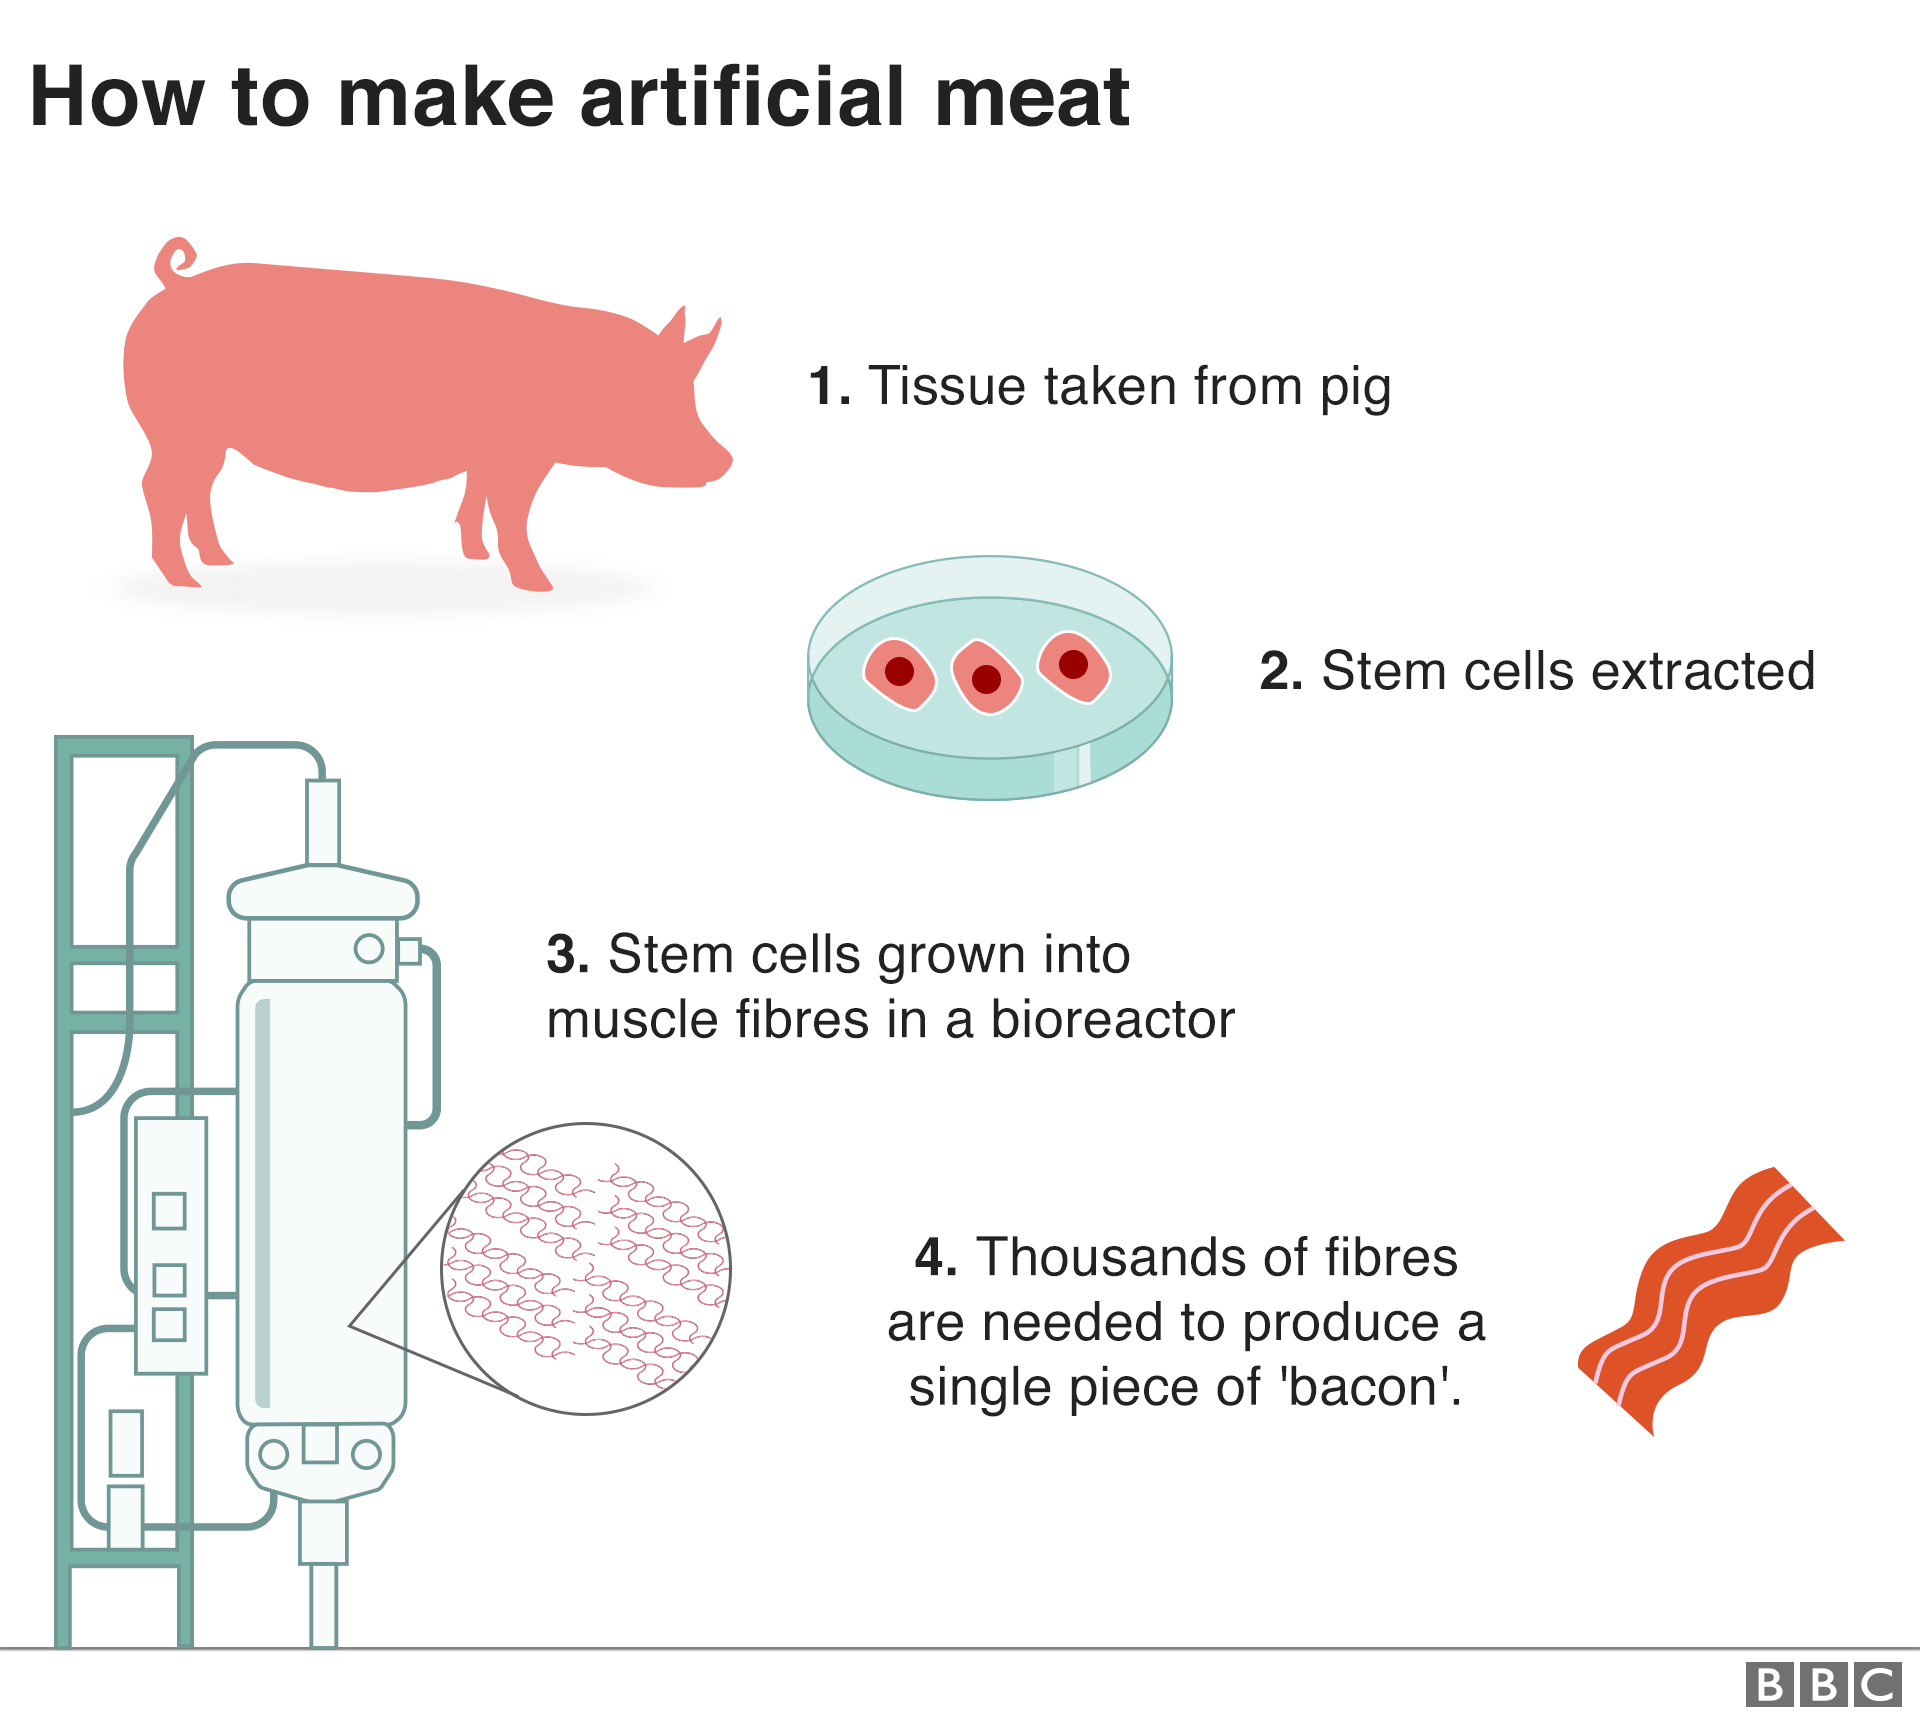 Graphic: How to make artificial meat